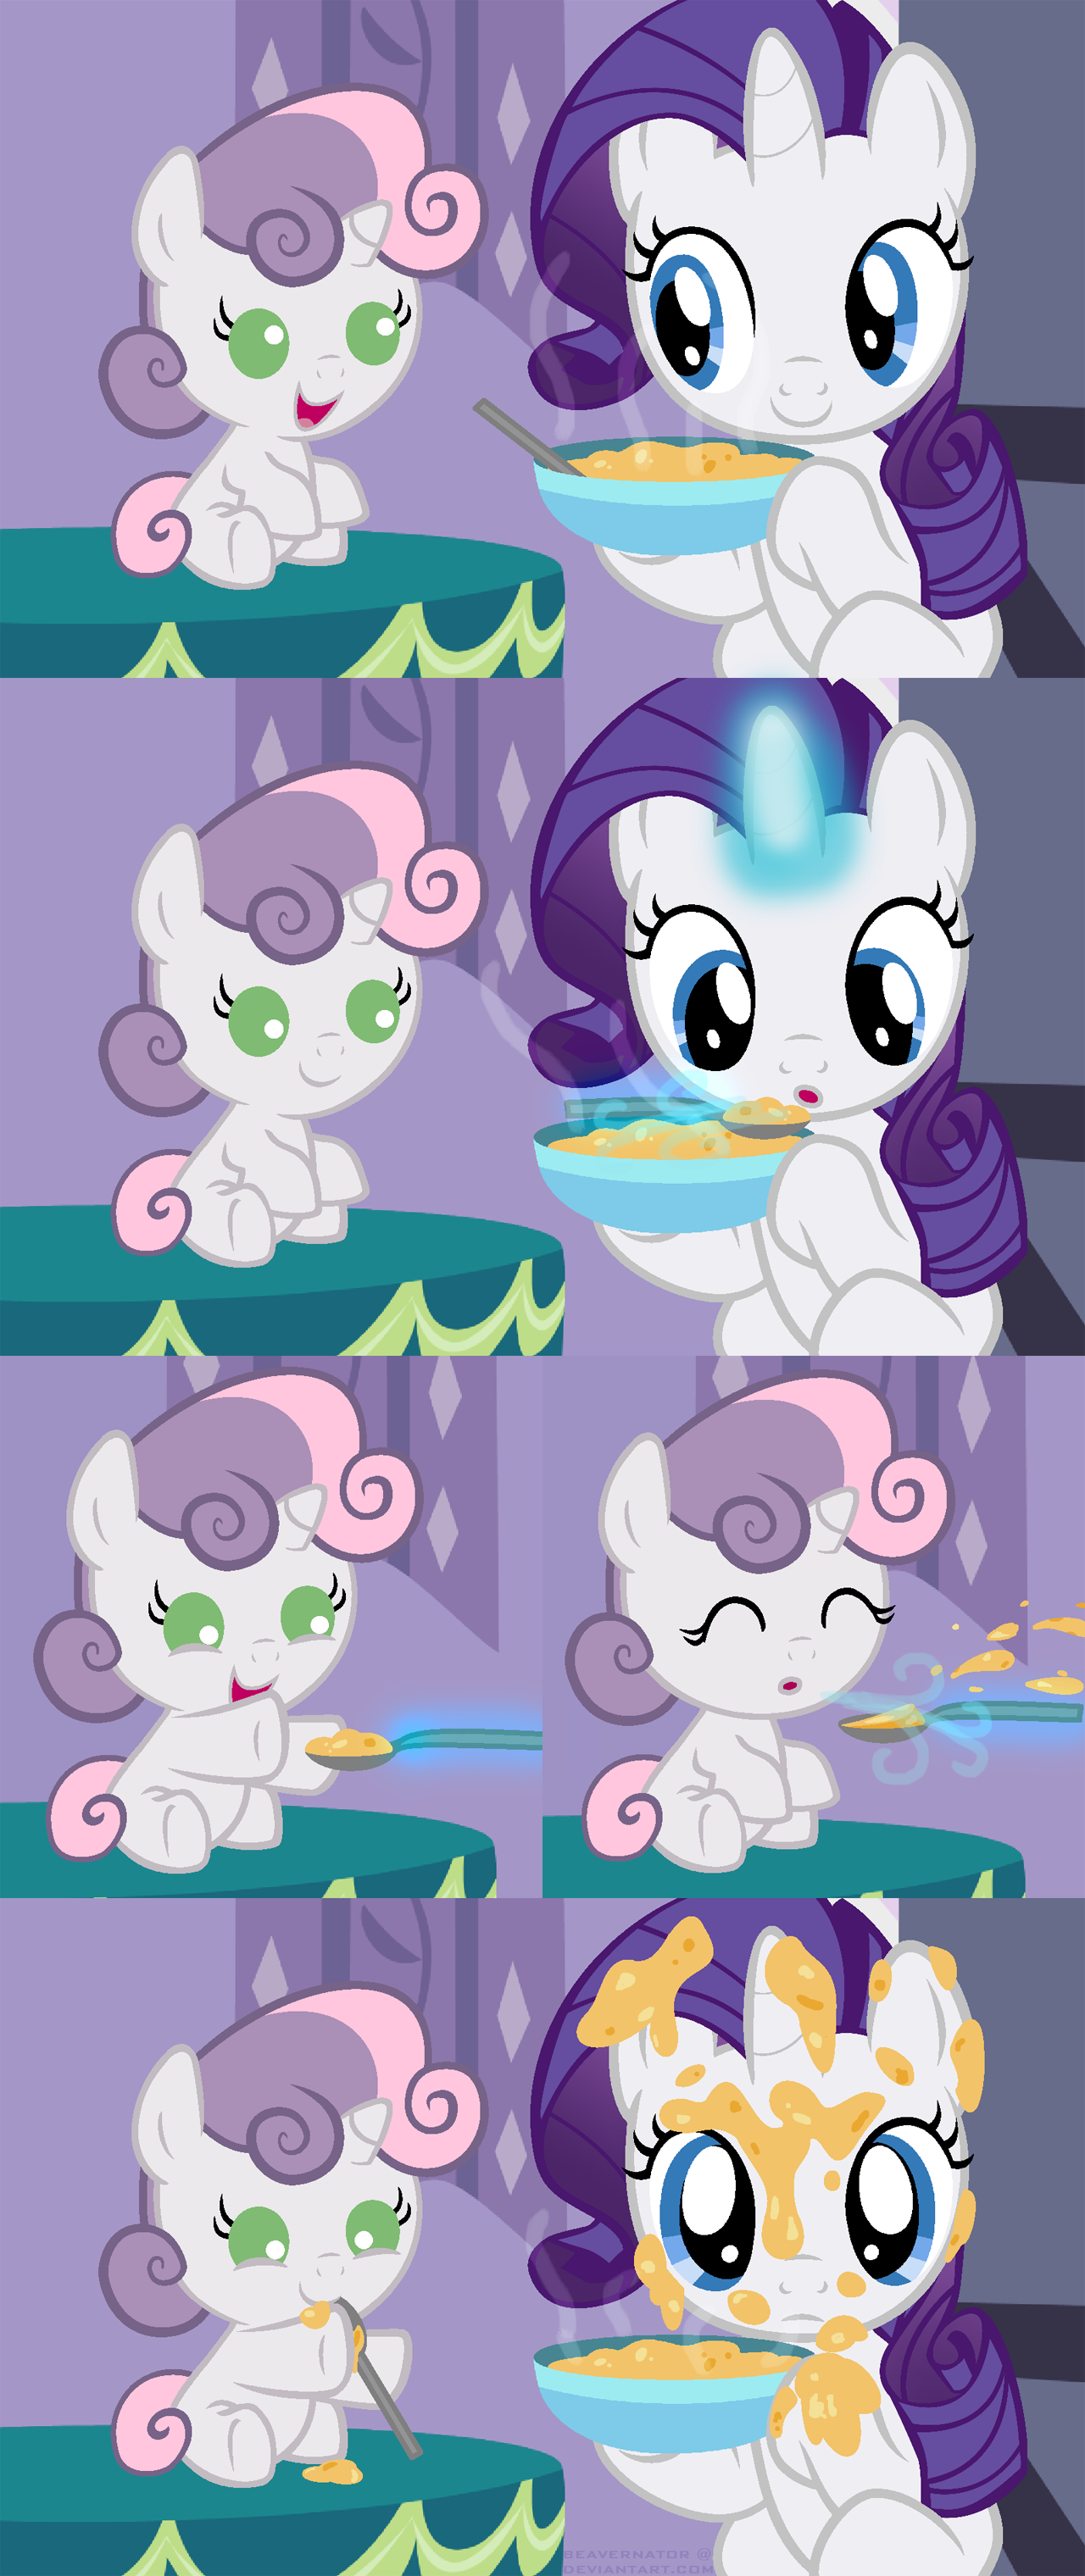 Spoonfeeding Sweetie Belle My Little Pony Friendship Is Magic Know Your Meme I've posted the rest in t. spoonfeeding sweetie belle my little